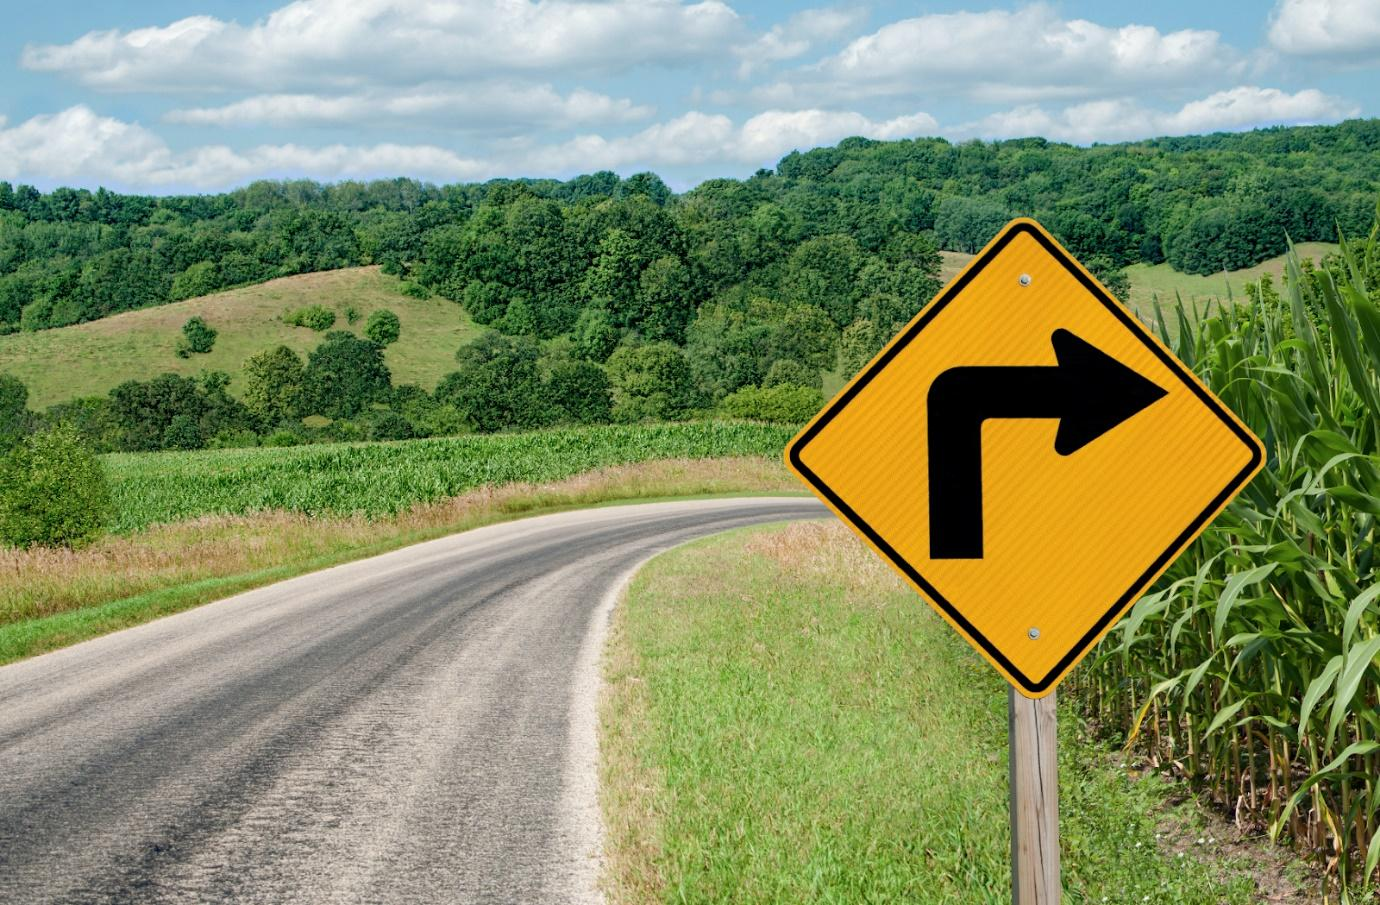 Sign in road to show the need to pivot in business